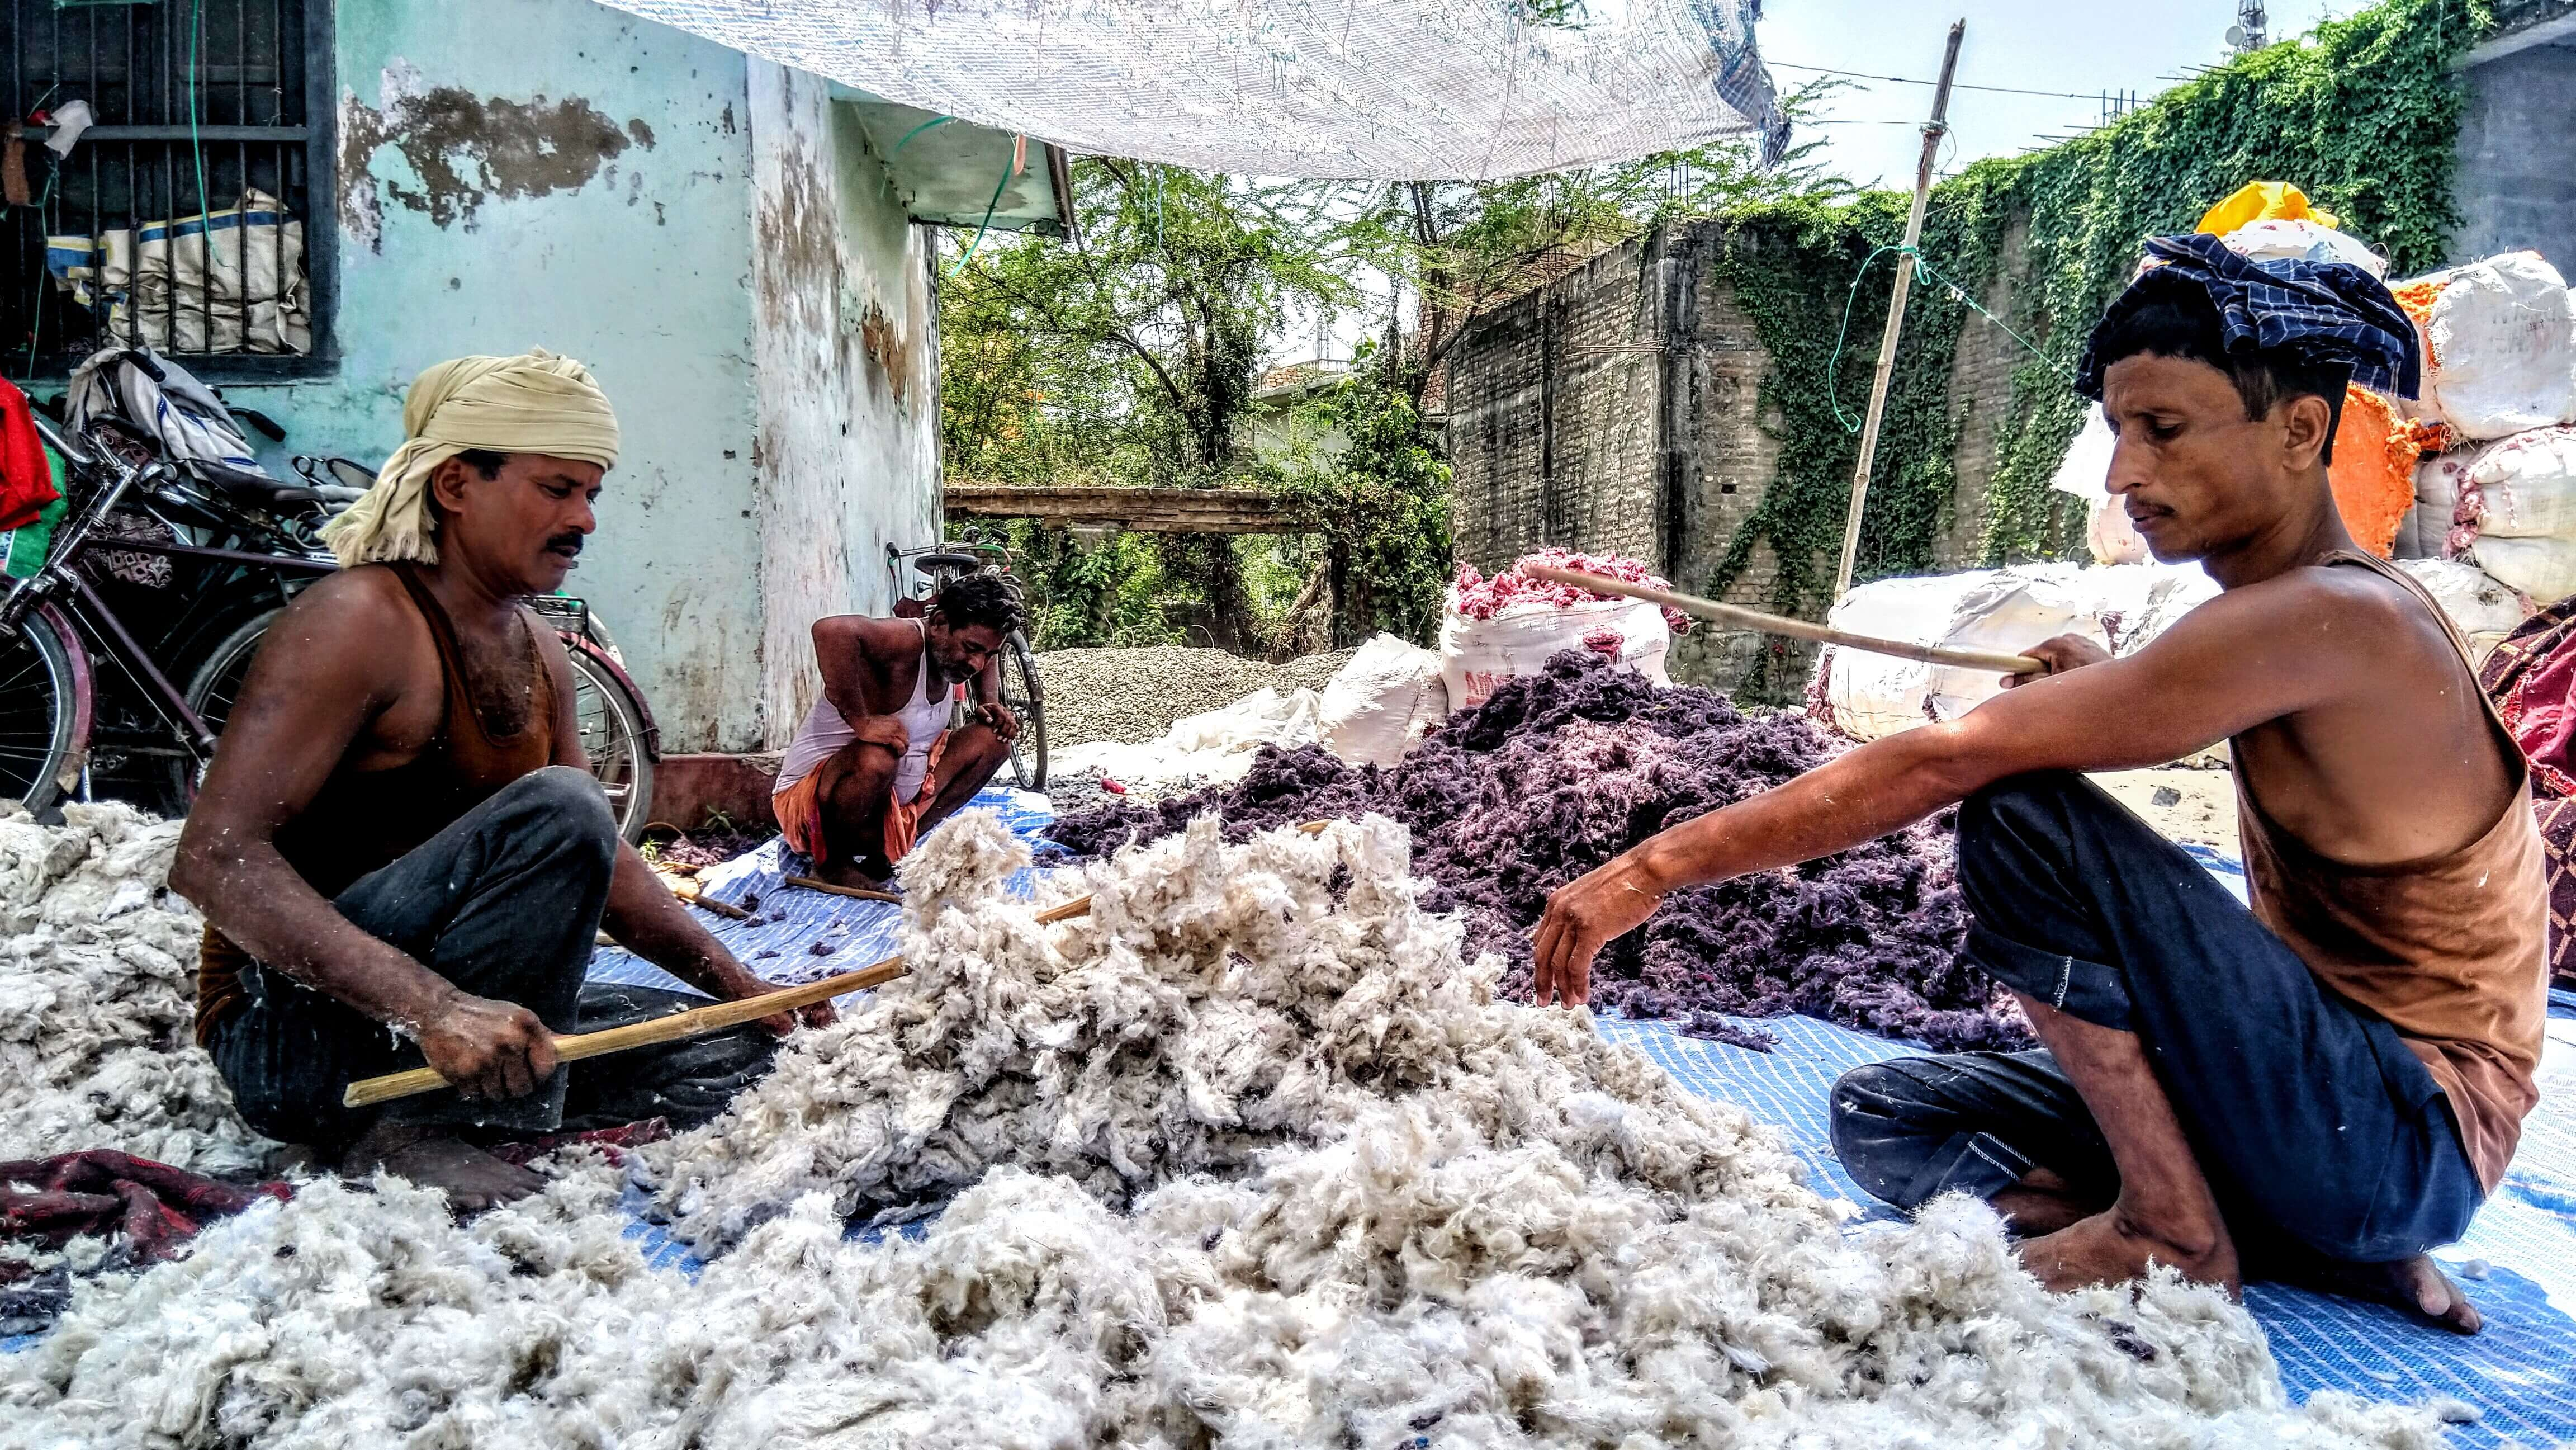 Muslim Dhunias: Carding Cotton for 6 Months, Starving for the Rest